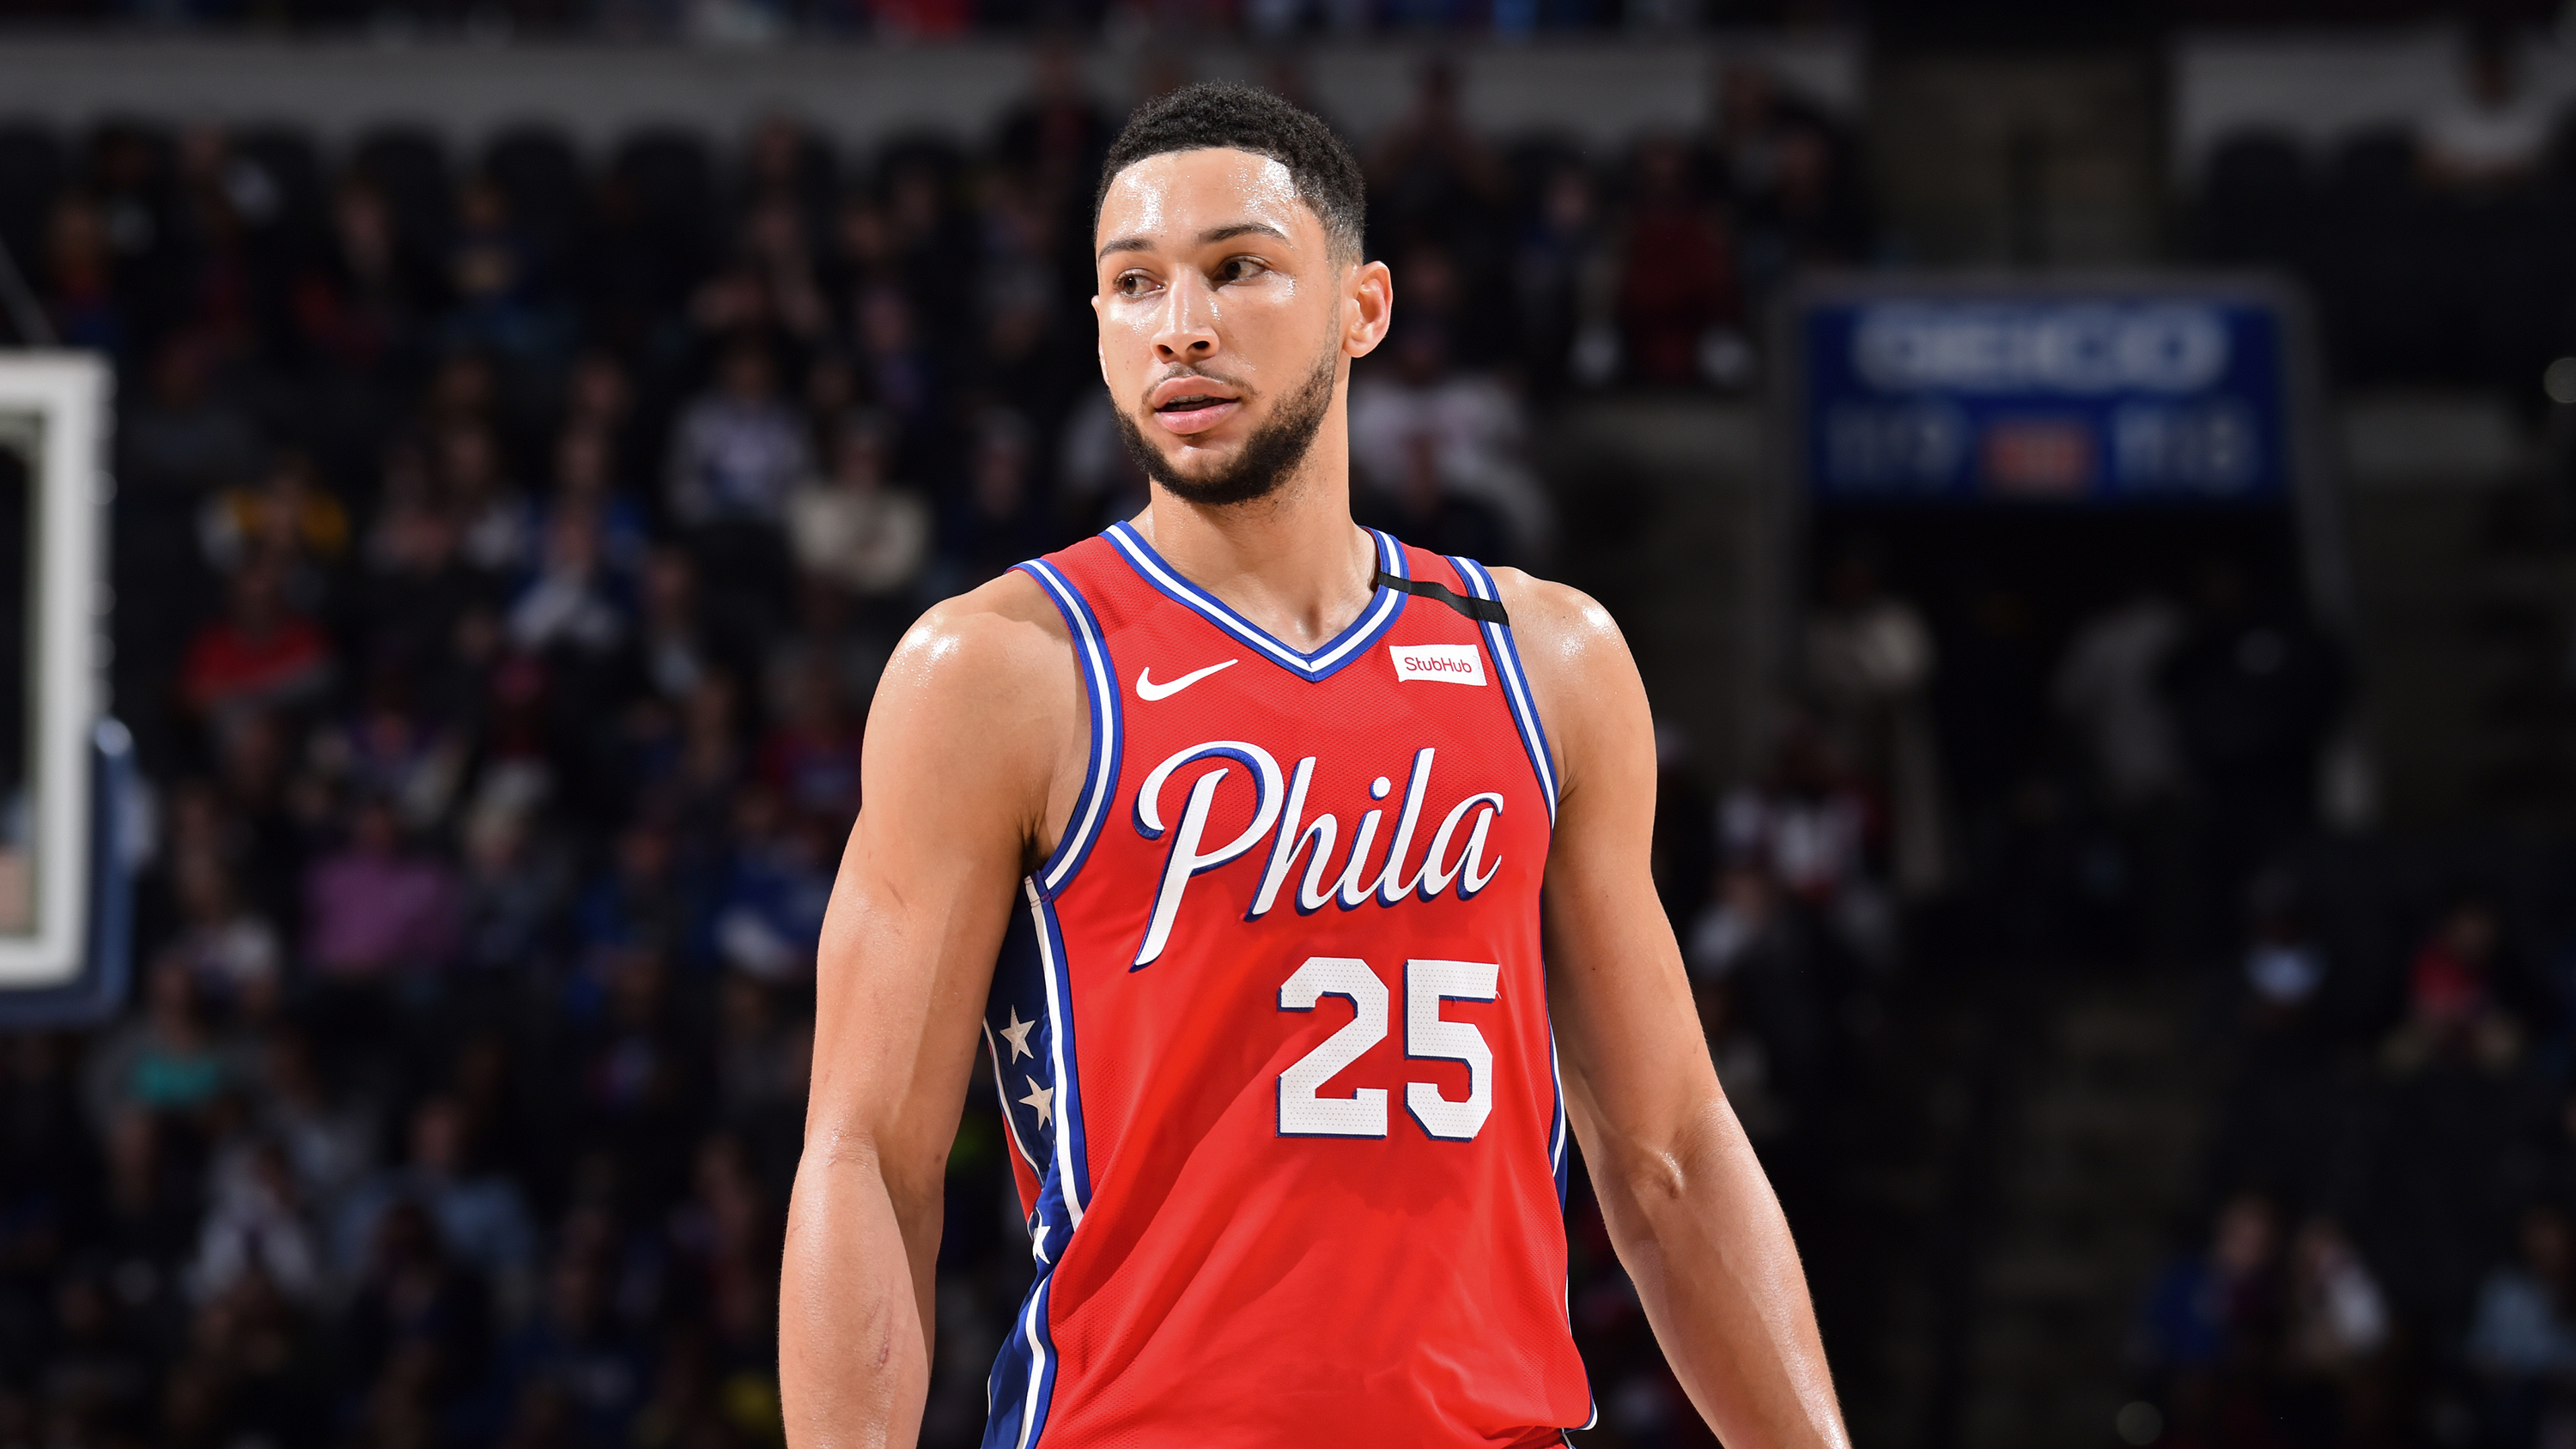 The 24-year old son of father (?) and mother(?) Ben Simmons in 2020 photo. Ben Simmons earned a million dollar salary - leaving the net worth at million in 2020